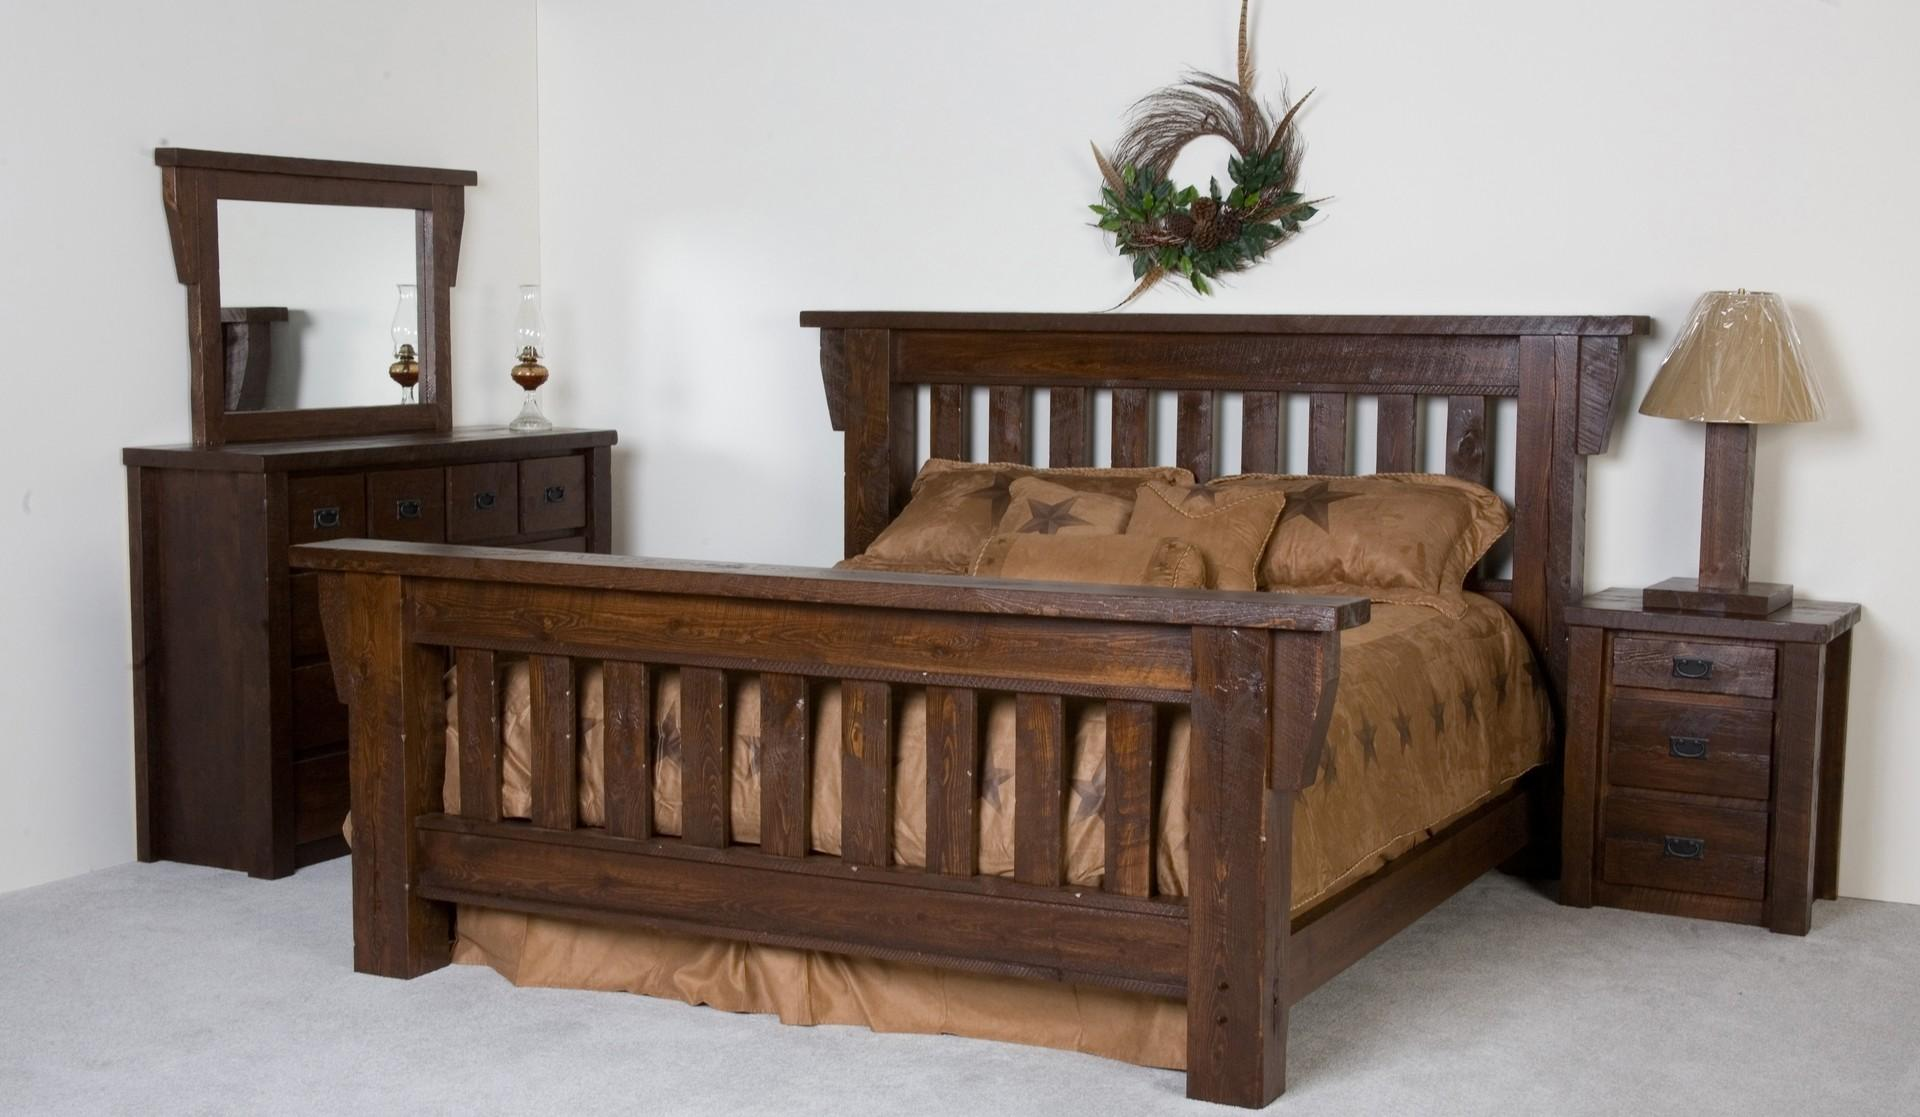 Discount Bed Frames Twin Frame Non Adjustable